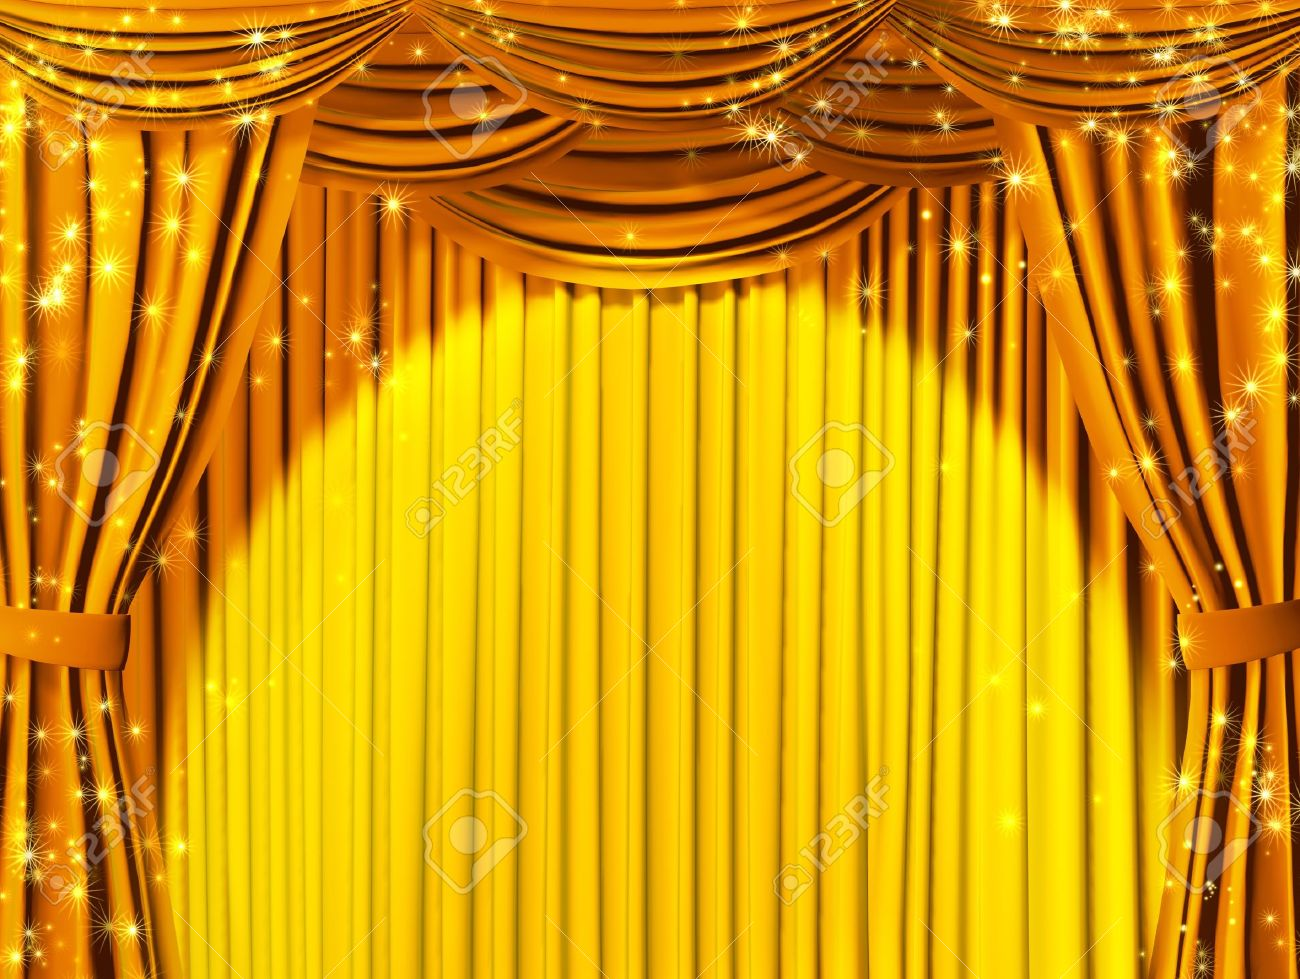 Theatrical Curtain Of Yellow Color Stock Photo Picture And Royalty